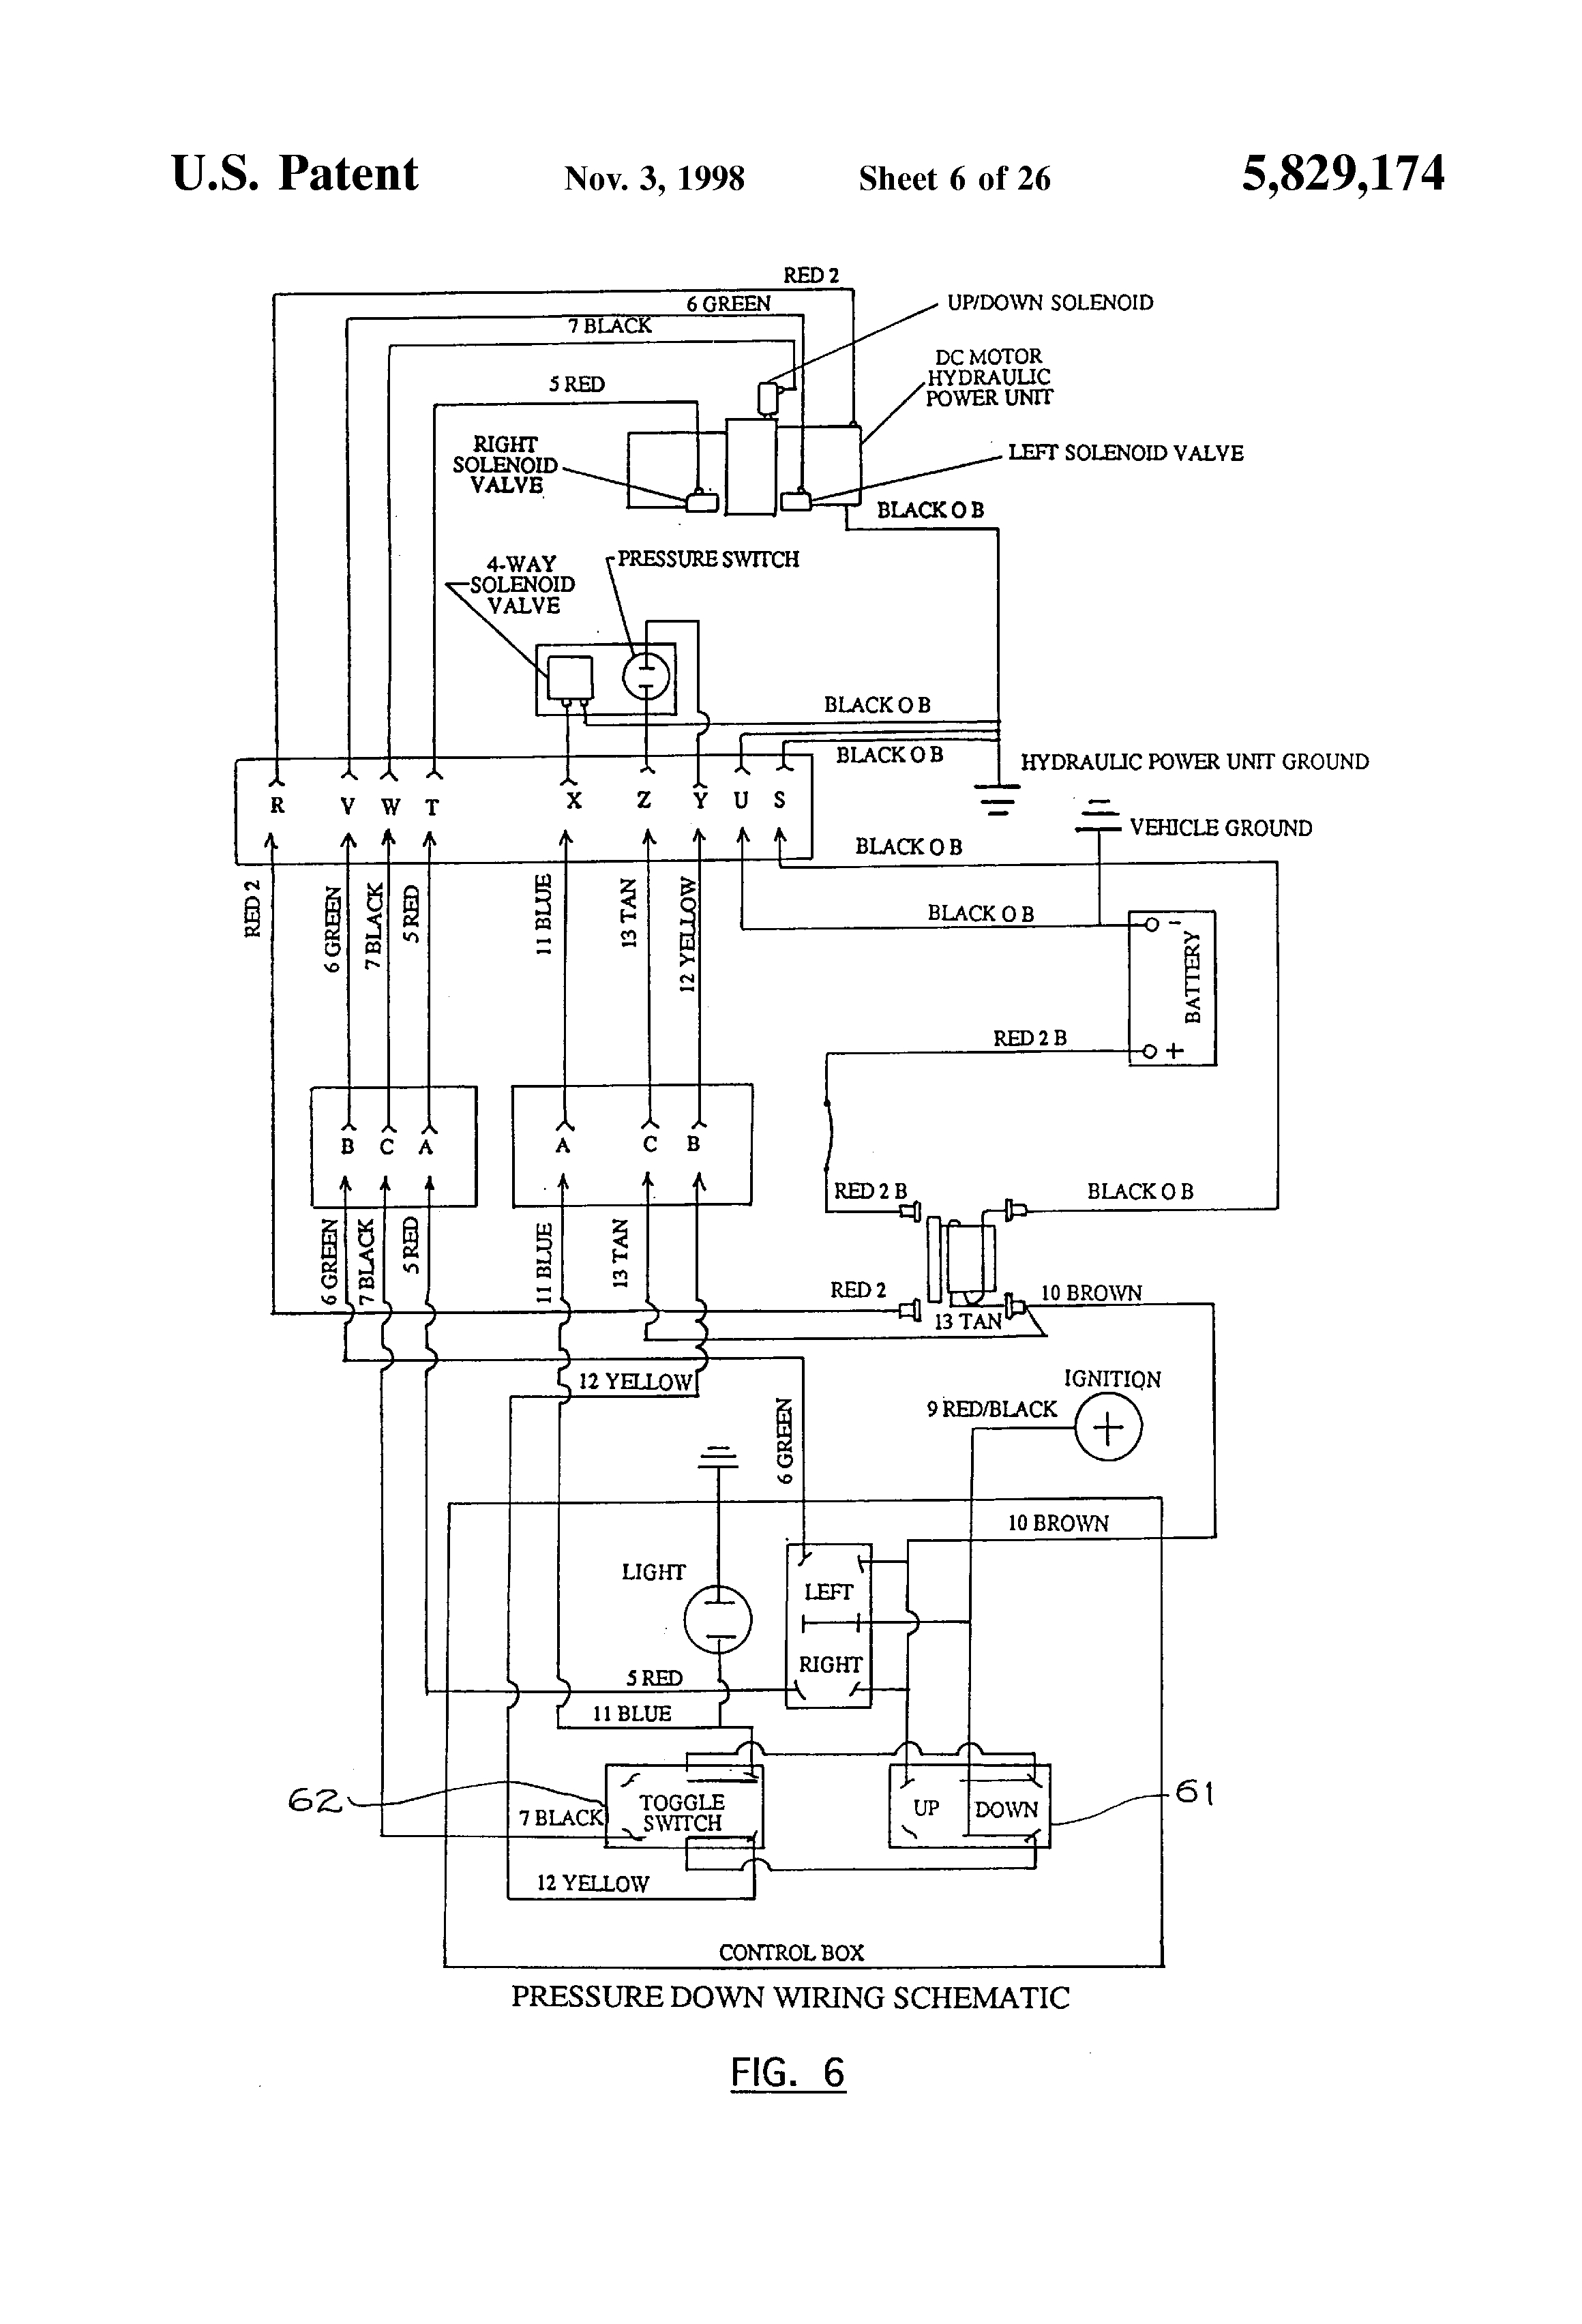 Rear Plow Plow Wiring - Wiring Diagram Expert Western Plow Wiring Diagram K on